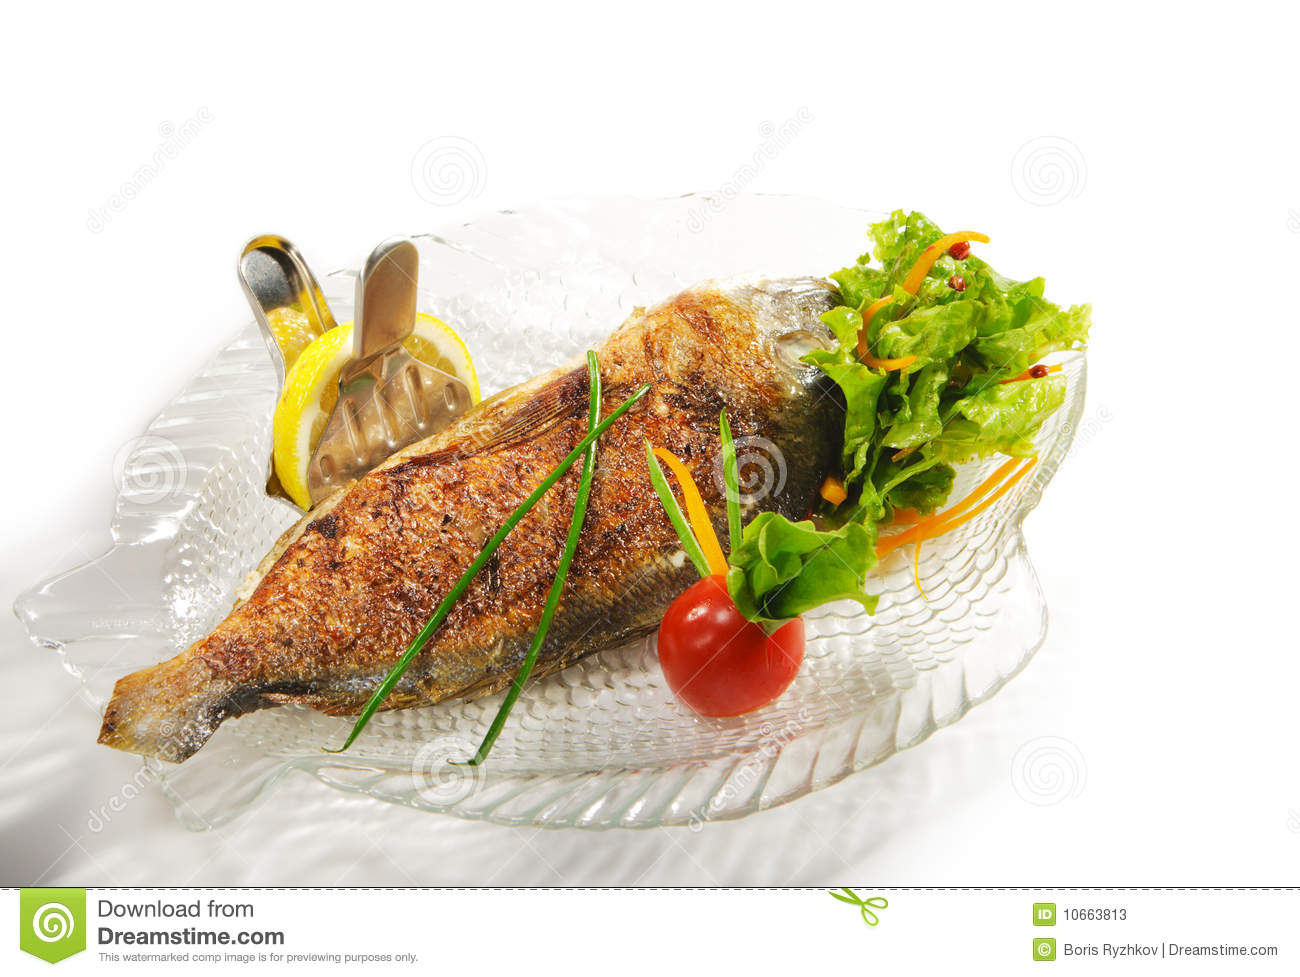 how to cook dorado fish